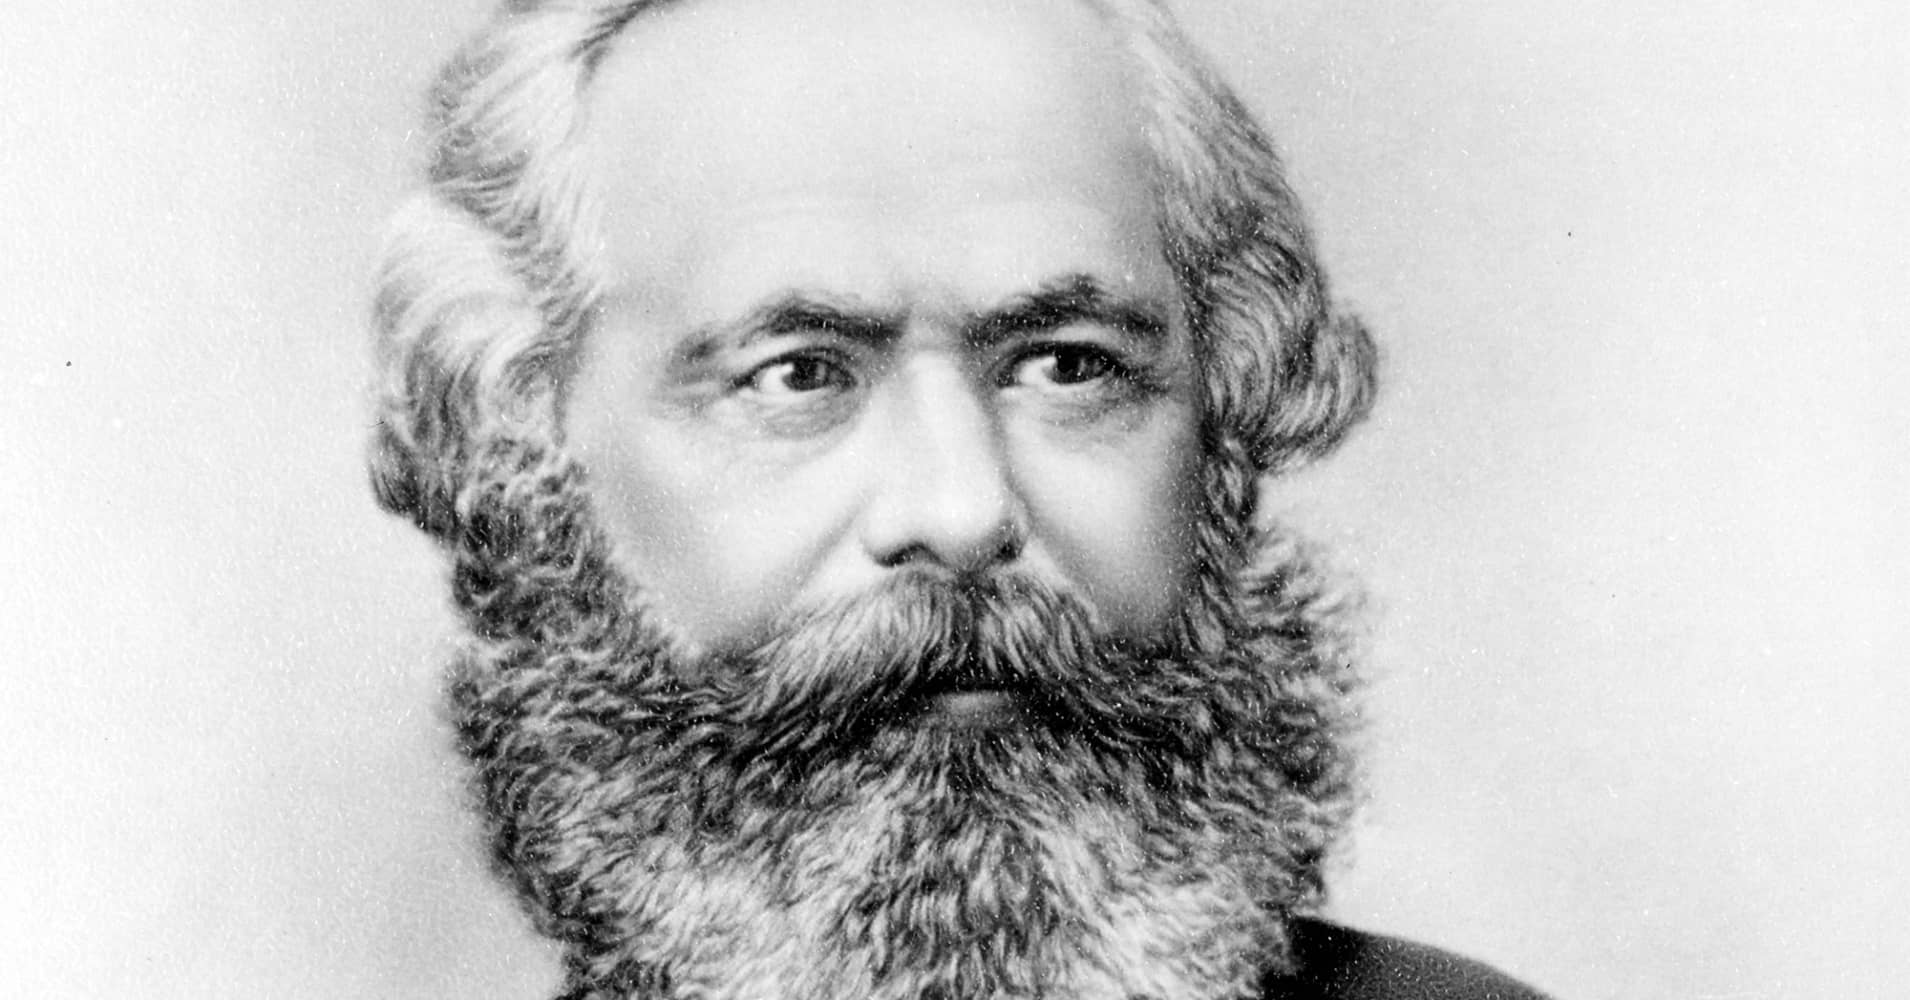 marx view on capitalism Marx has a different view karl marx's theory was the exploitation of labor, that is to create producer surplus, from uncompensated worker effort  come to fruition and as capitalism evolves in our mixed economy more of his ideas are ironically become manifest though capitalism marx is a conflict theory because one group of society in not.